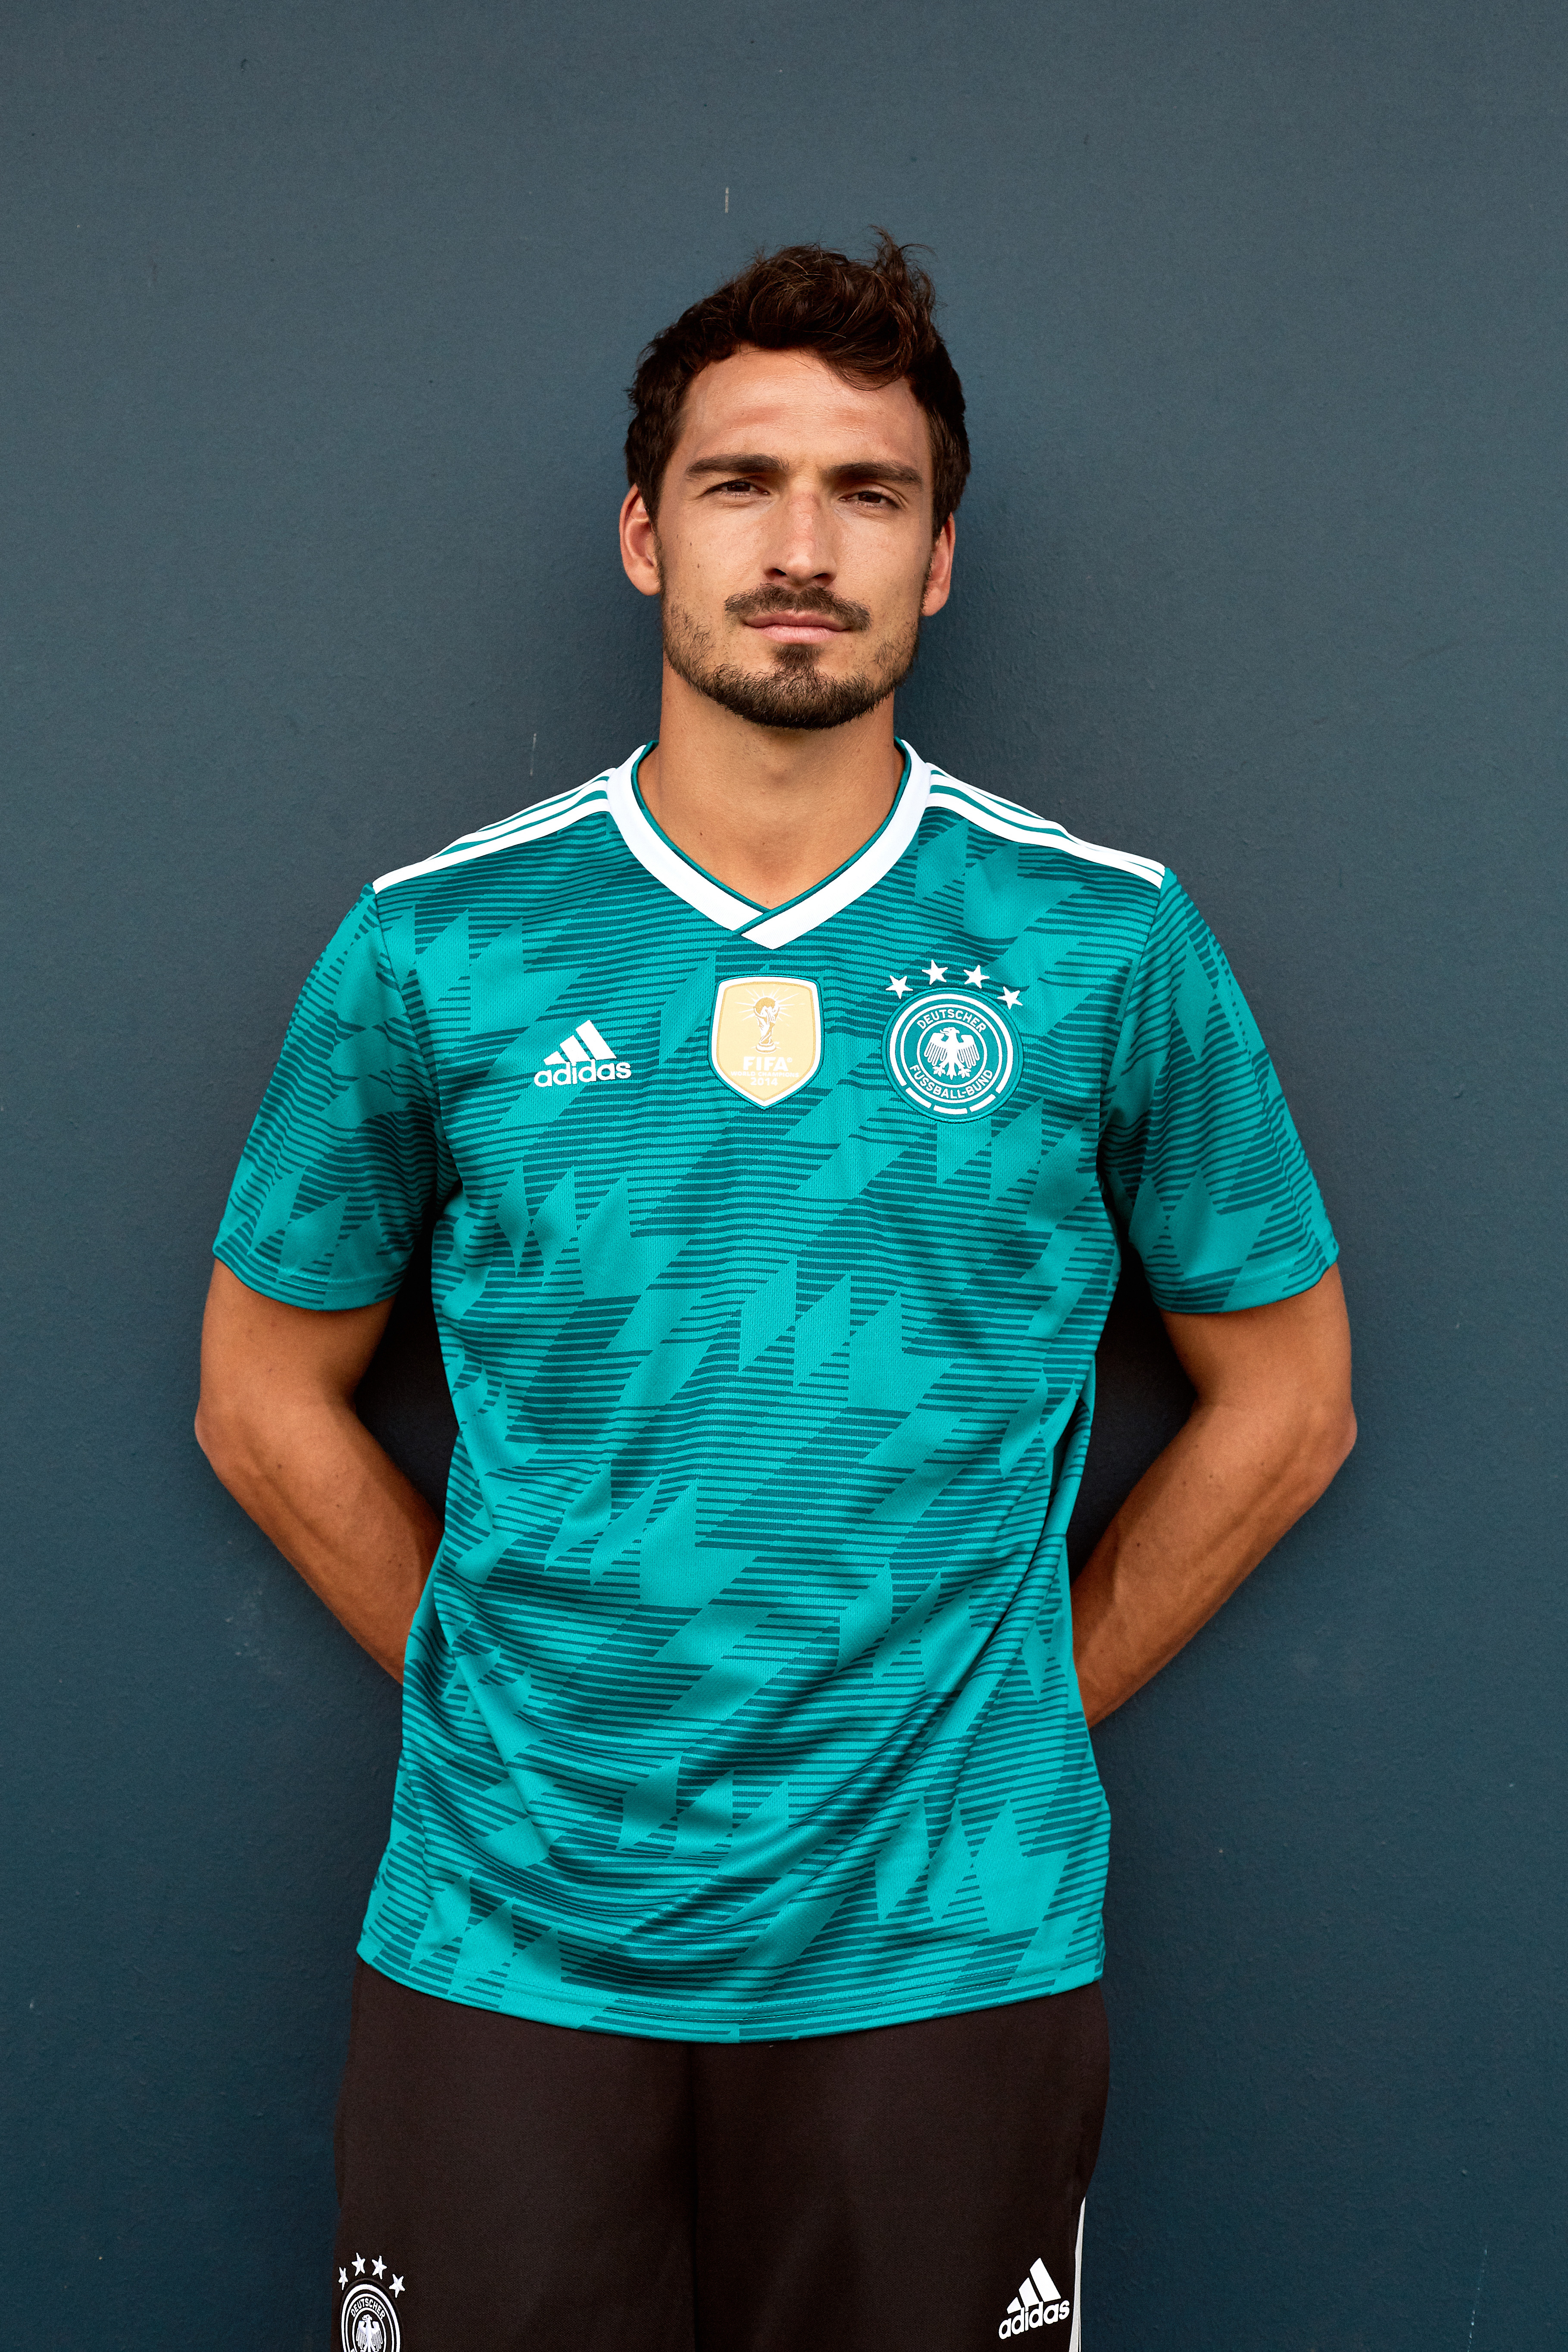 c5a068c187b1f How 10 of the boldest World Cup kits score in the style stakes